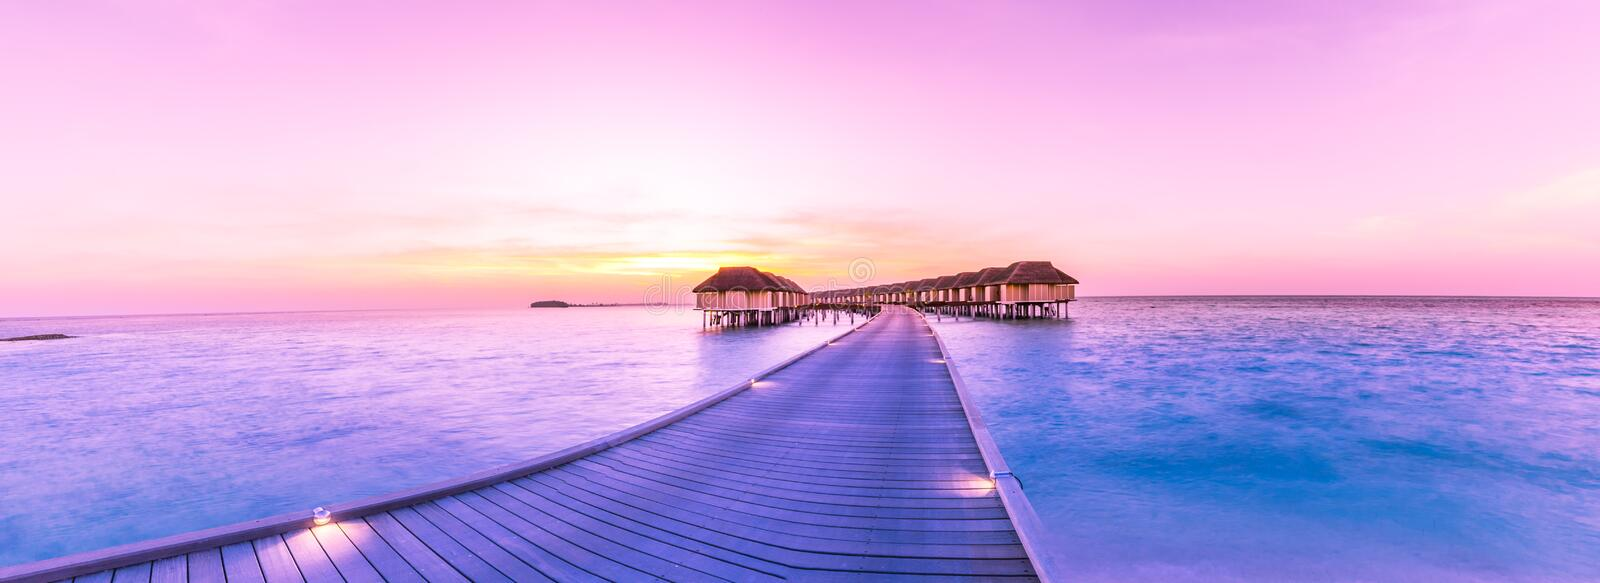 Amazing panorama beach landscape. Maldives sunset seascape view. Horizon with sea and sky. Tranquil scenery, tourism and travel stock photos